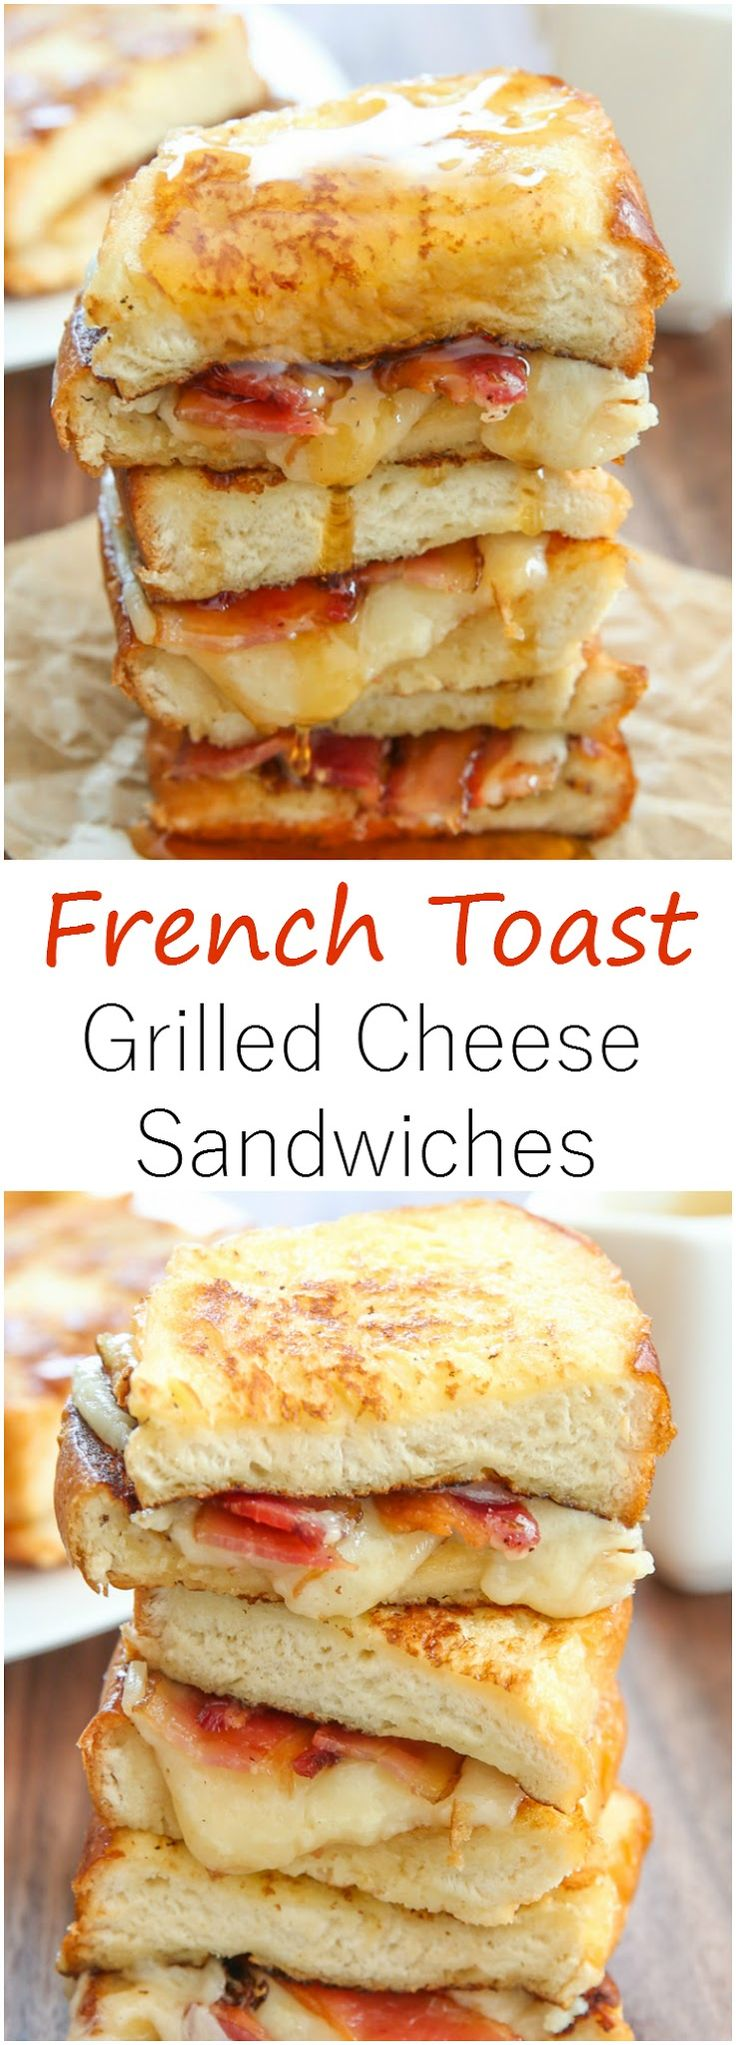 French Toast Grilled Cheese Sandwiches. These make a delicious breakfast sandwich!